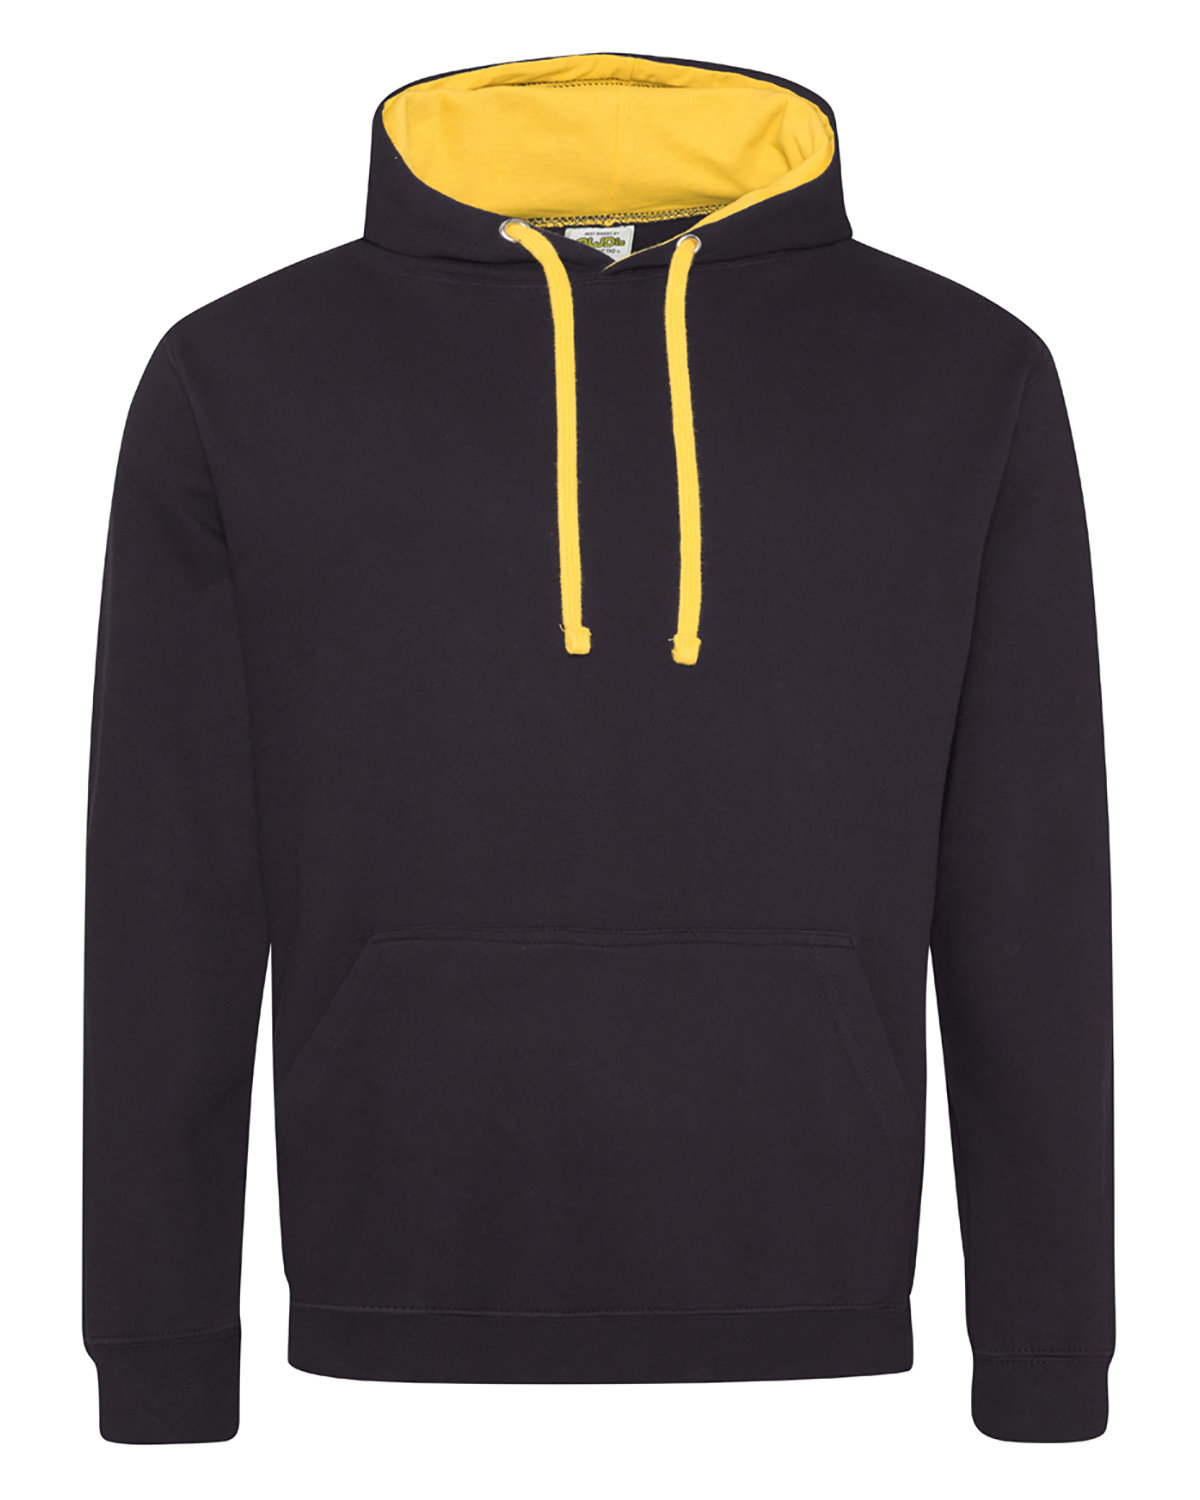 Just Hoods By AWDis Adult 80/20 Midweight Varsity Contrast Hooded Sweatshirt JET BLACK/ GOLD